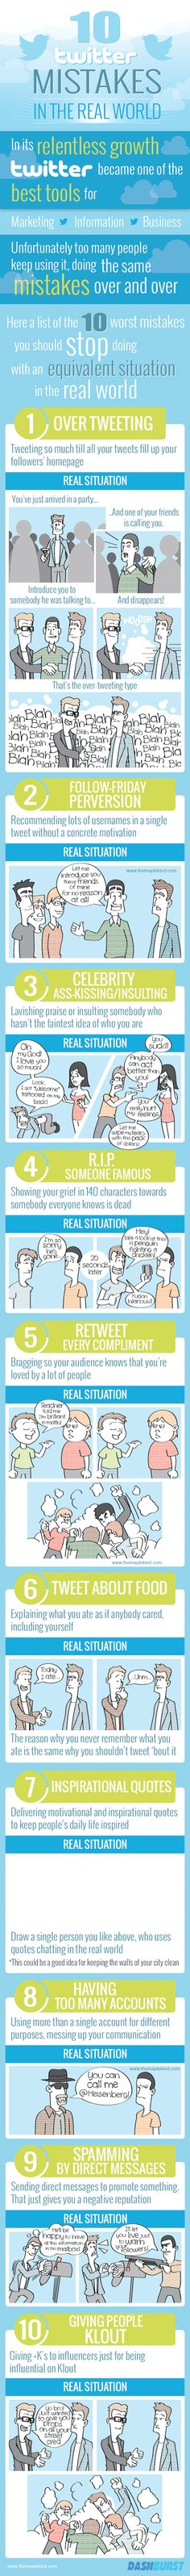 Things not to do on twitter #infographic